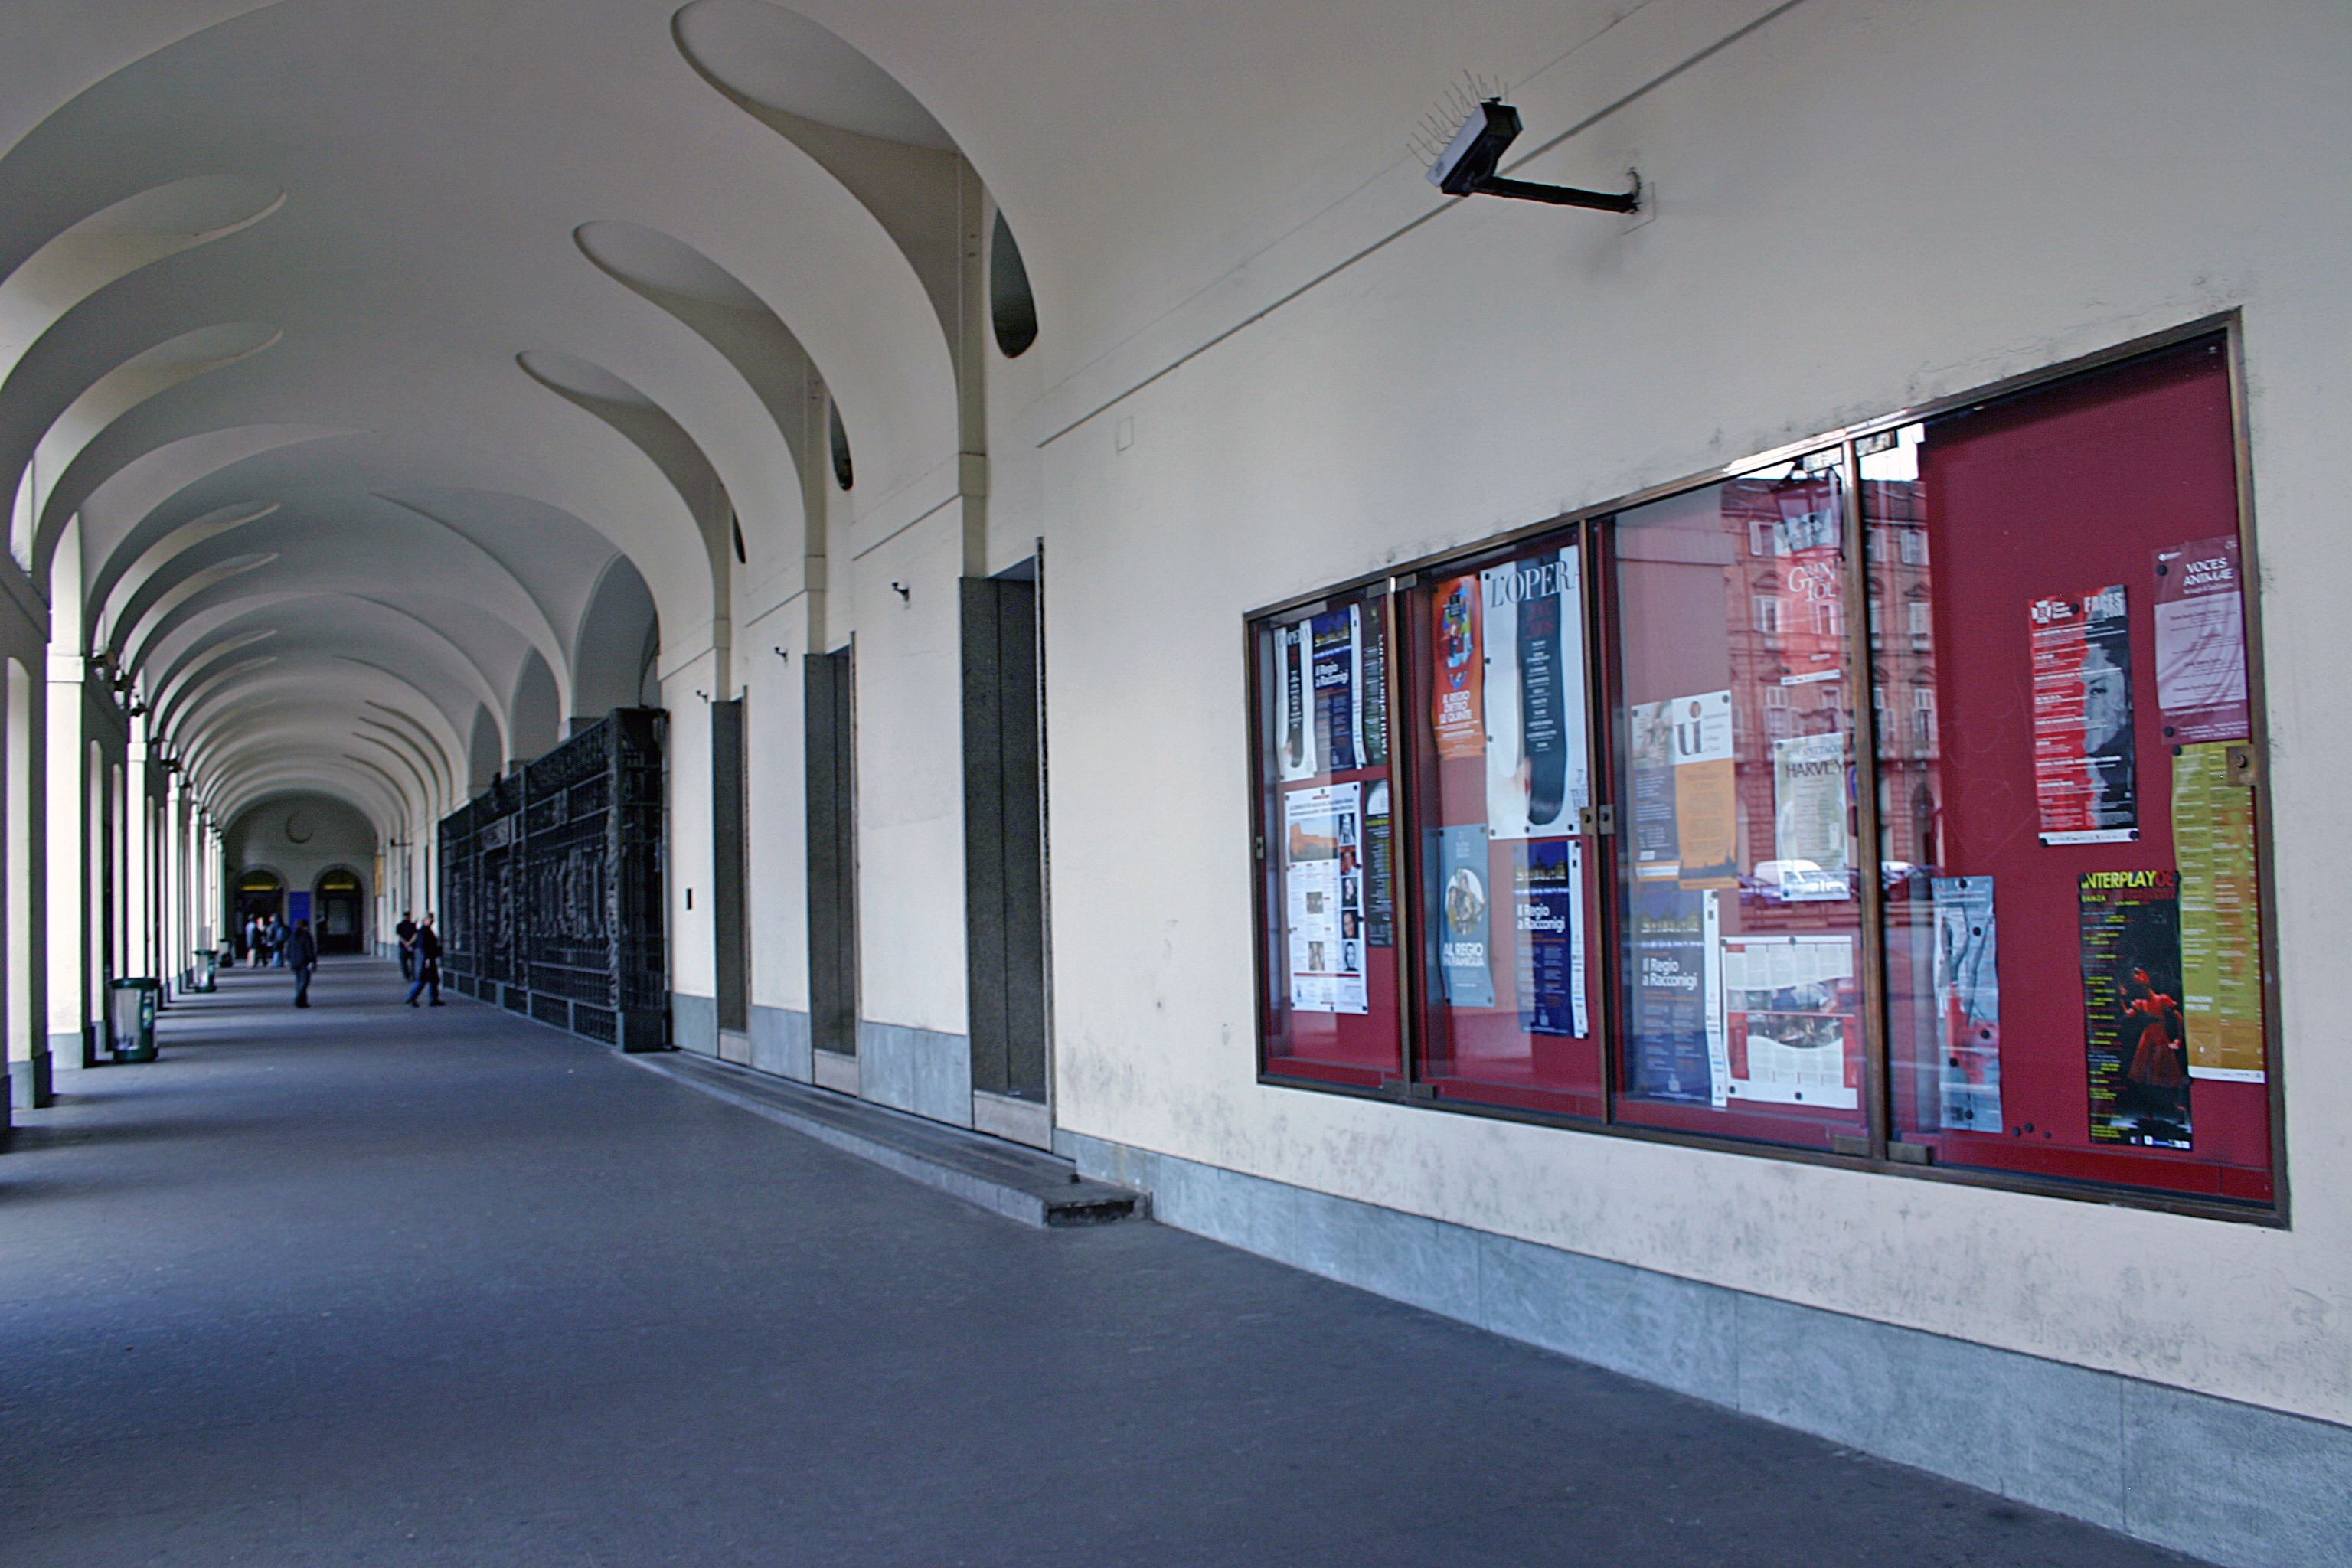 Porticos in front of the theatre entrance, in piazza Castello